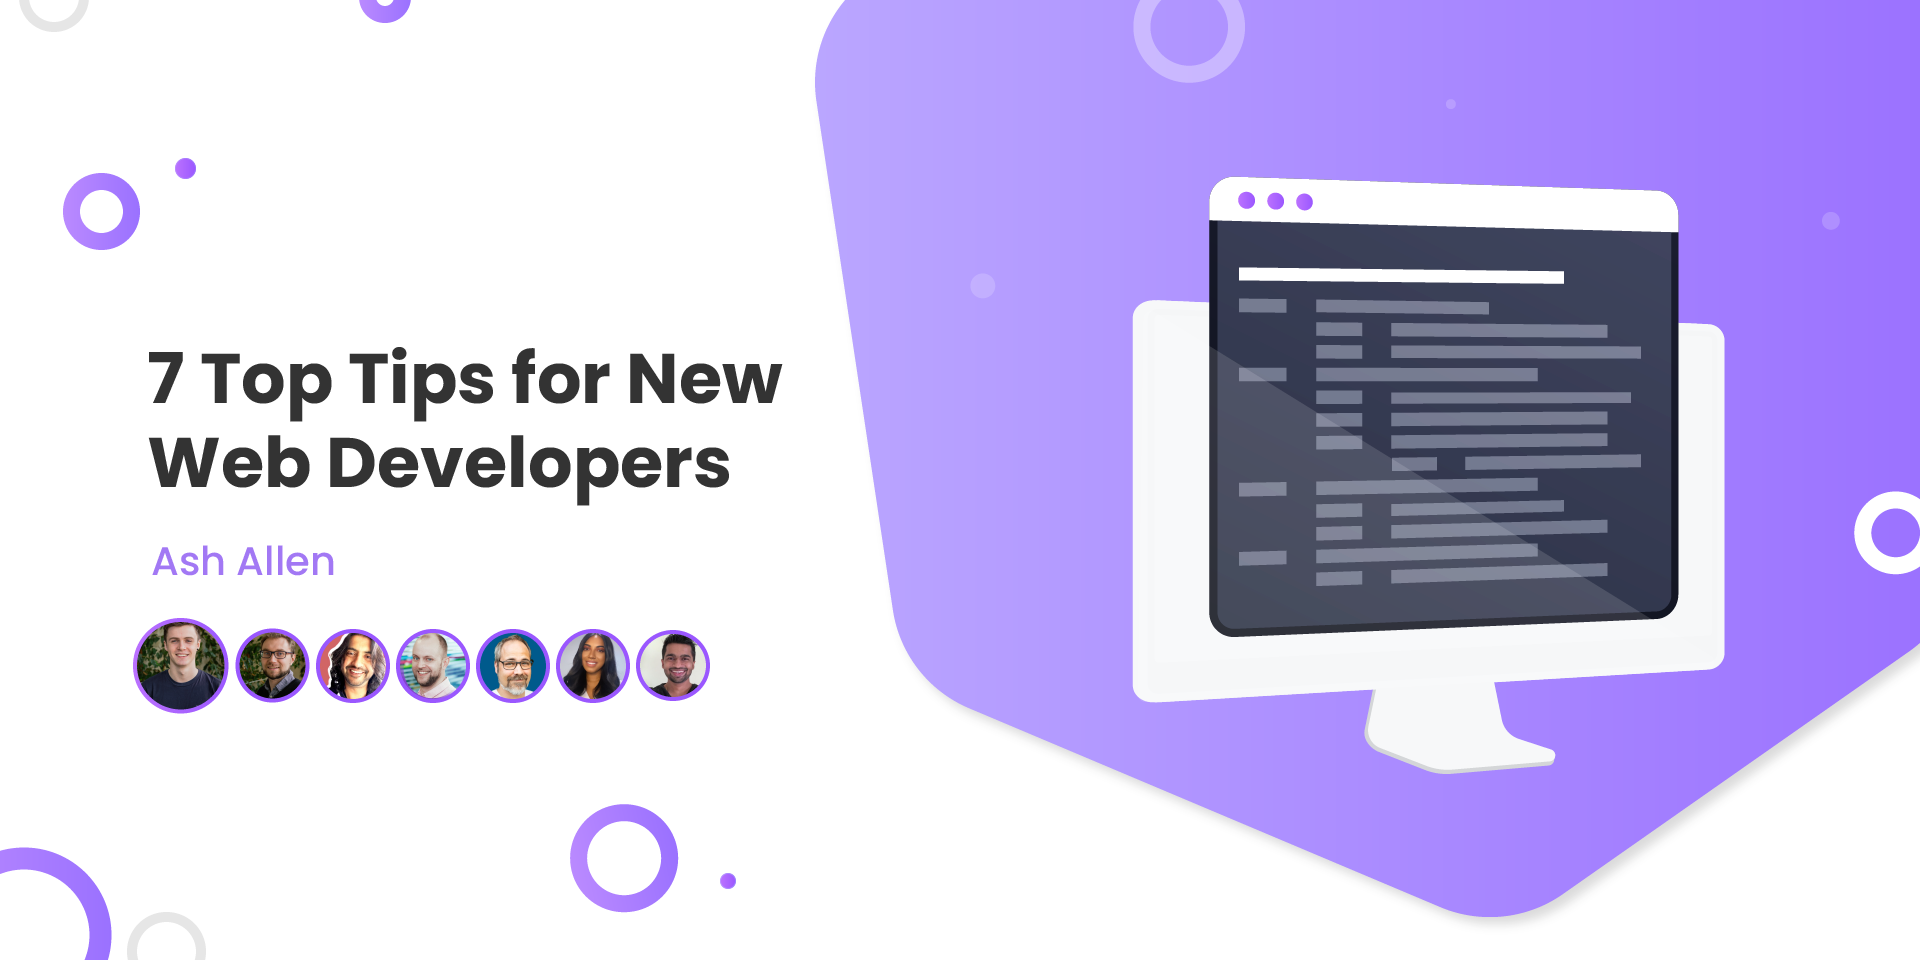 Read 7 different top tips for new developers straight from CTOs, directors, developers and recruiters. I wish I'd have found out about these tips when I first started as a new web developer.